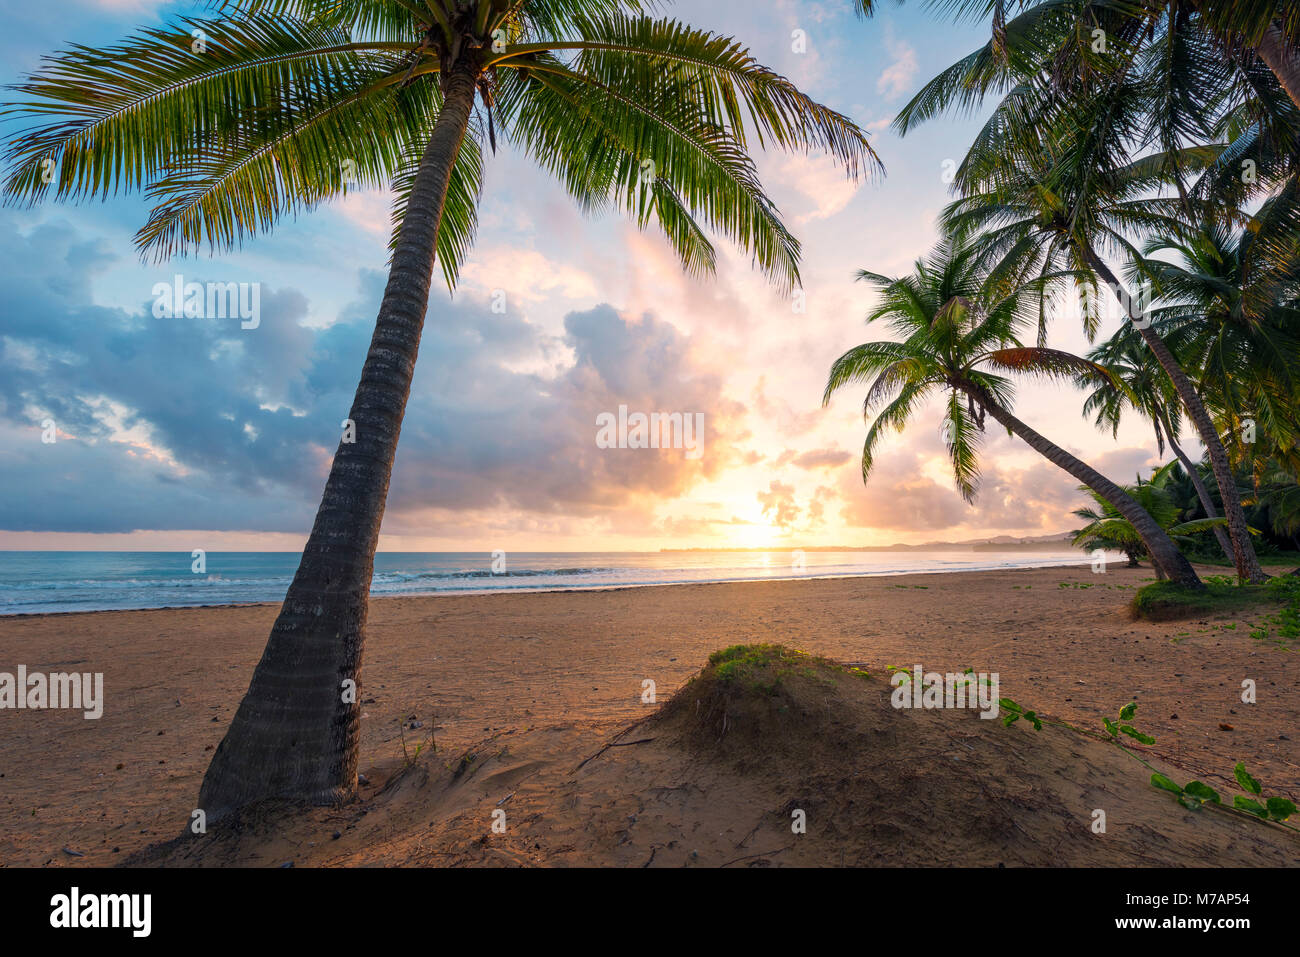 Picturesque sunrise on a Caribbean beach of the island of Puerto Rico, - Stock Image